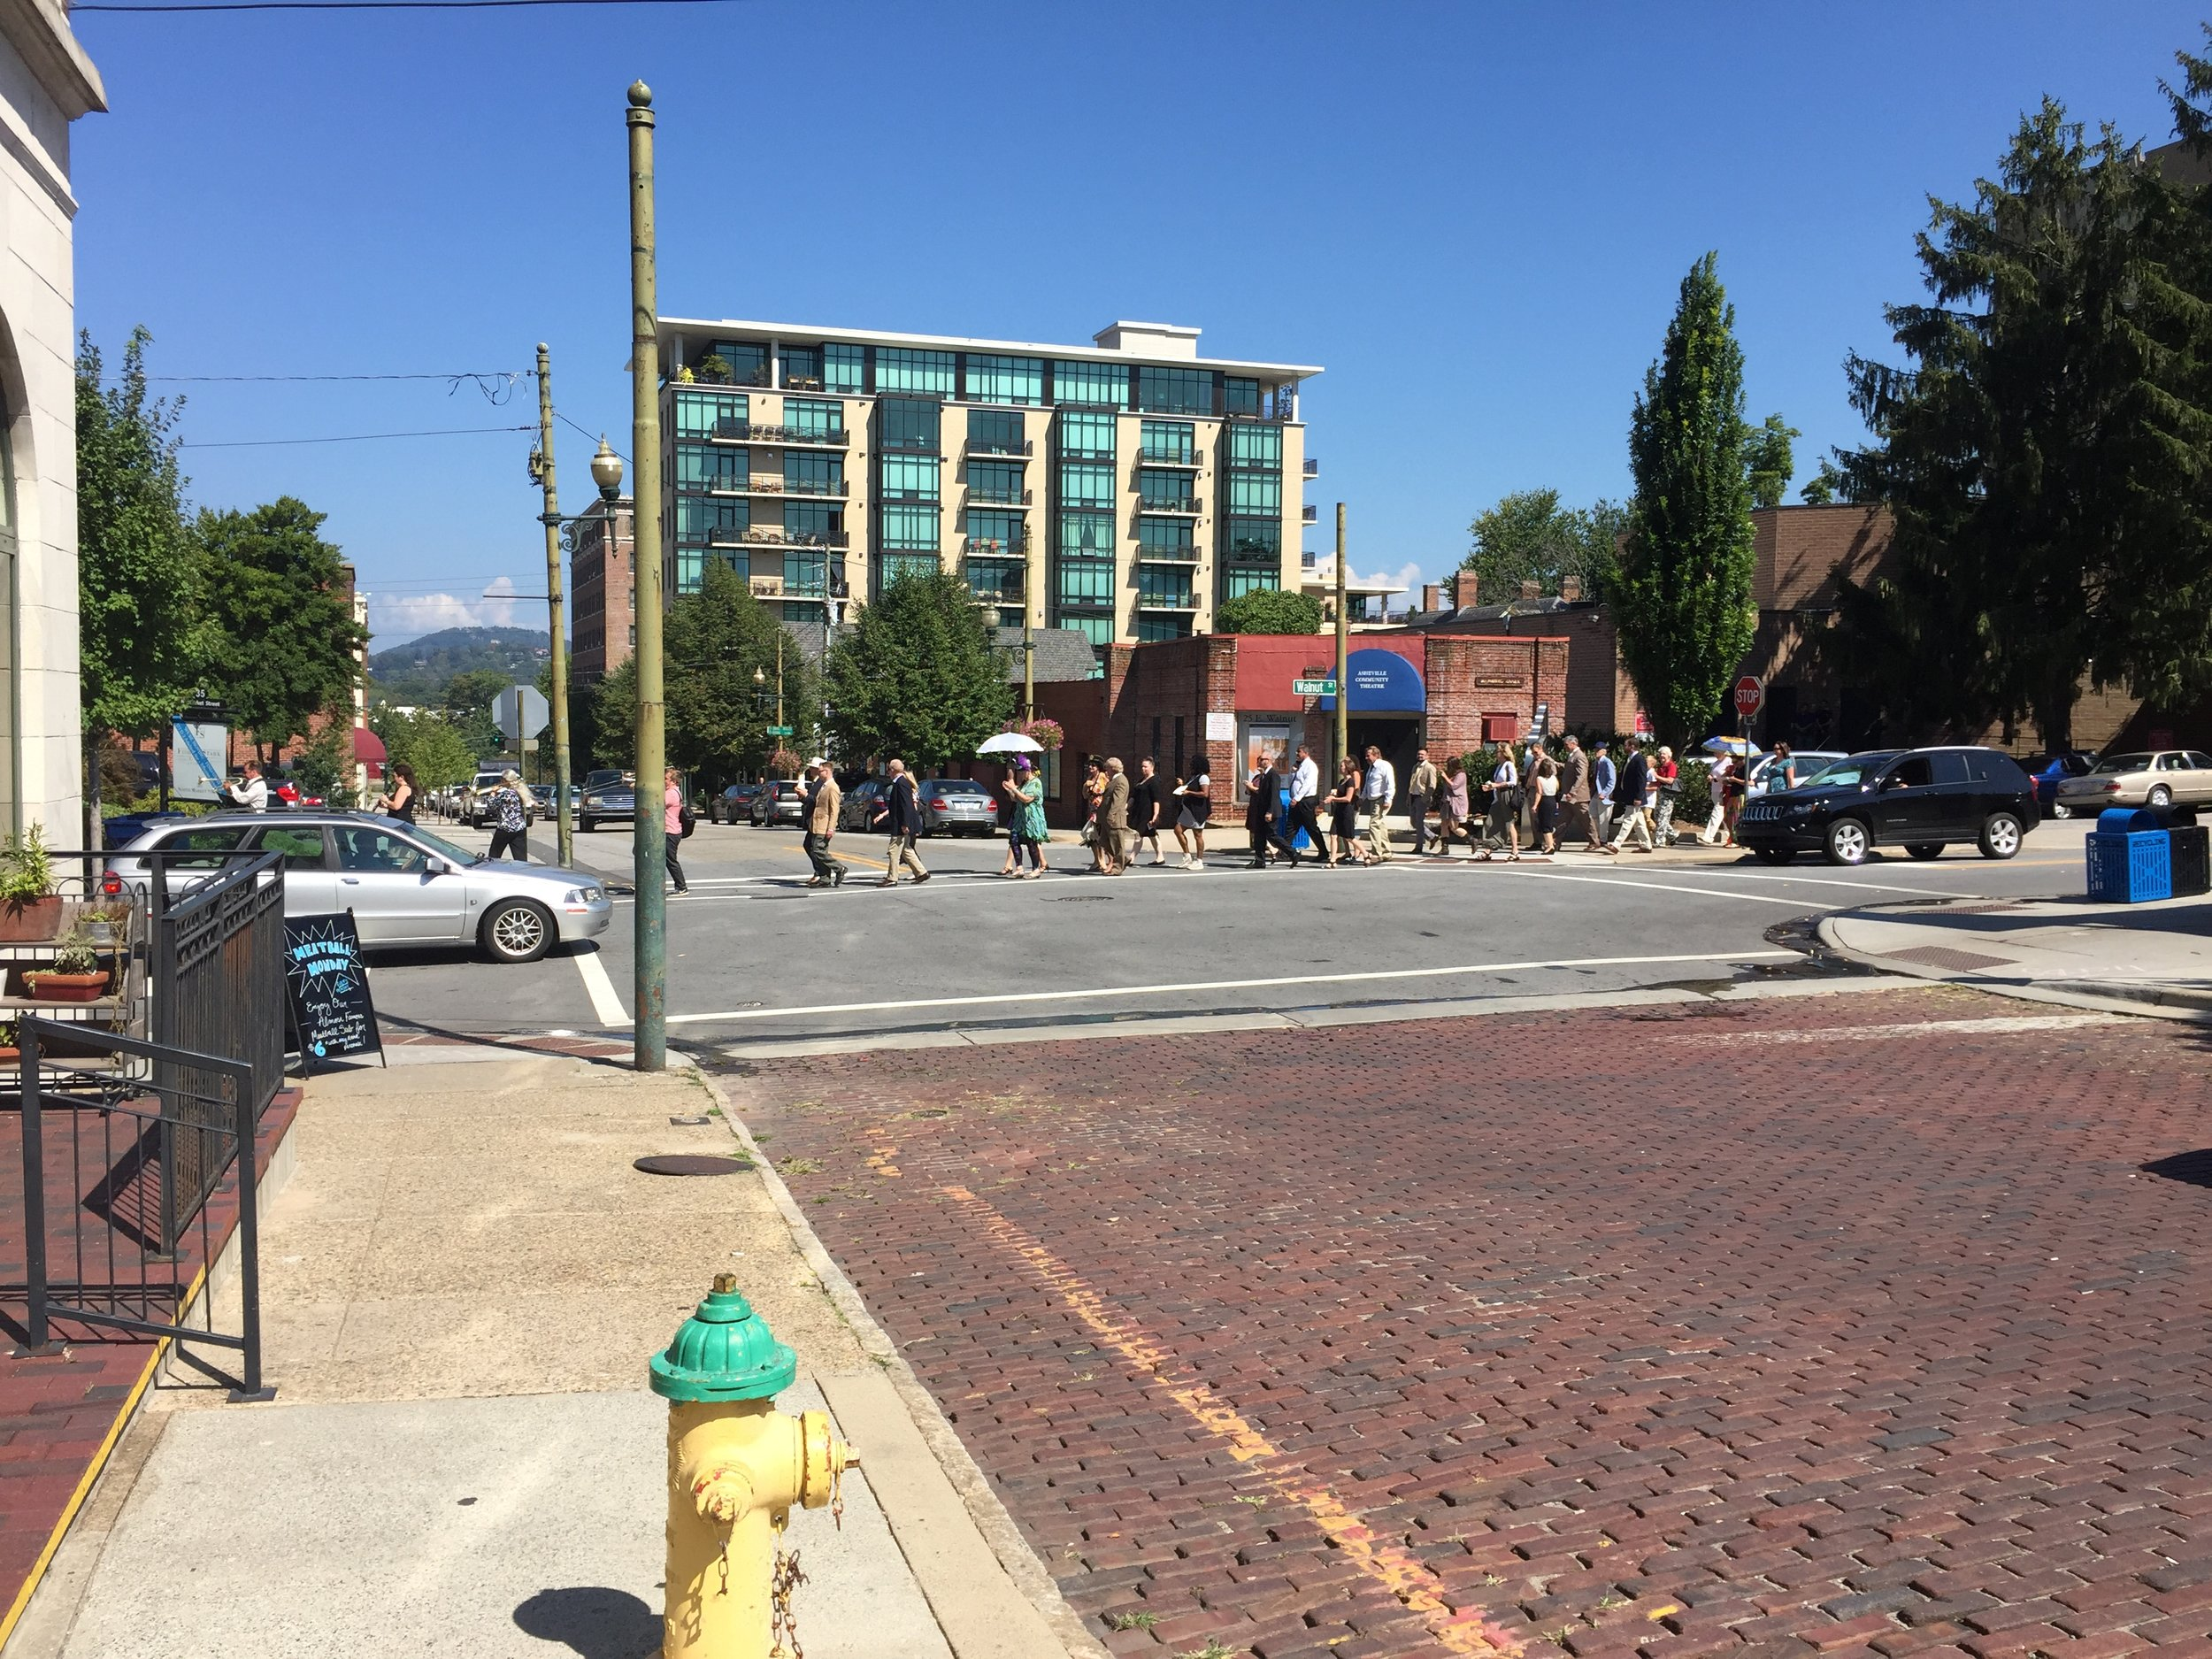 Being serenaded by a brass band in Asheville, September 14, 2014.